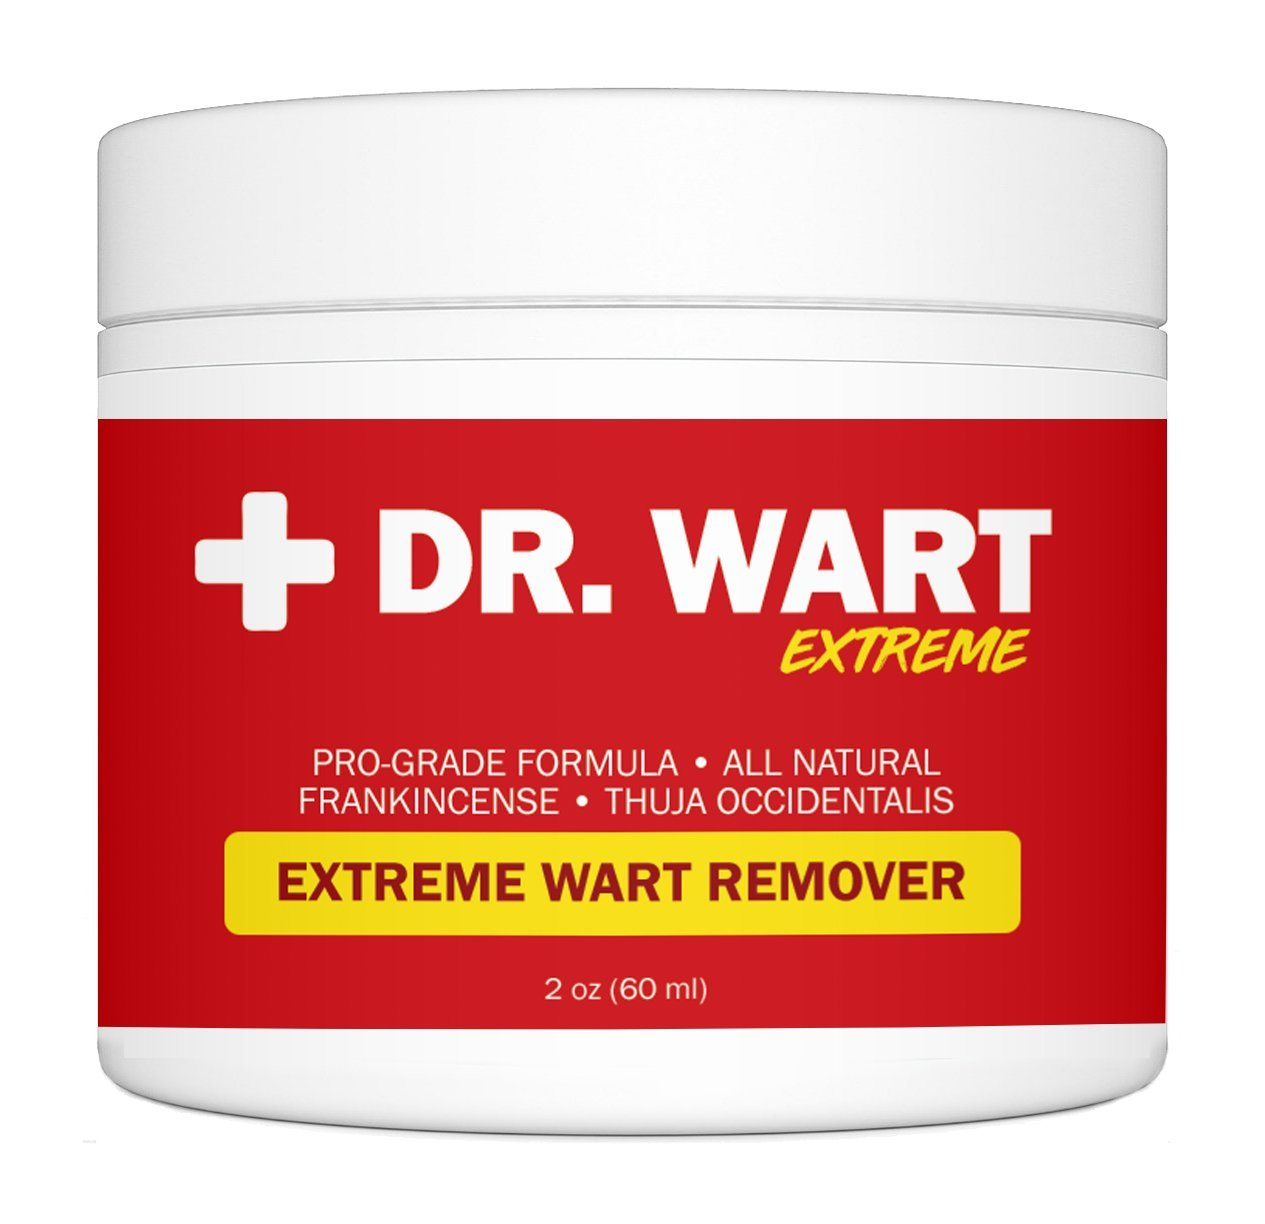 DR  WART - Extreme Wart Remover - Works on All Warts! - Plantar Warts,  Common Warts, Flat Warts, Warts on Hands, Body and Feet - No More Warts  with